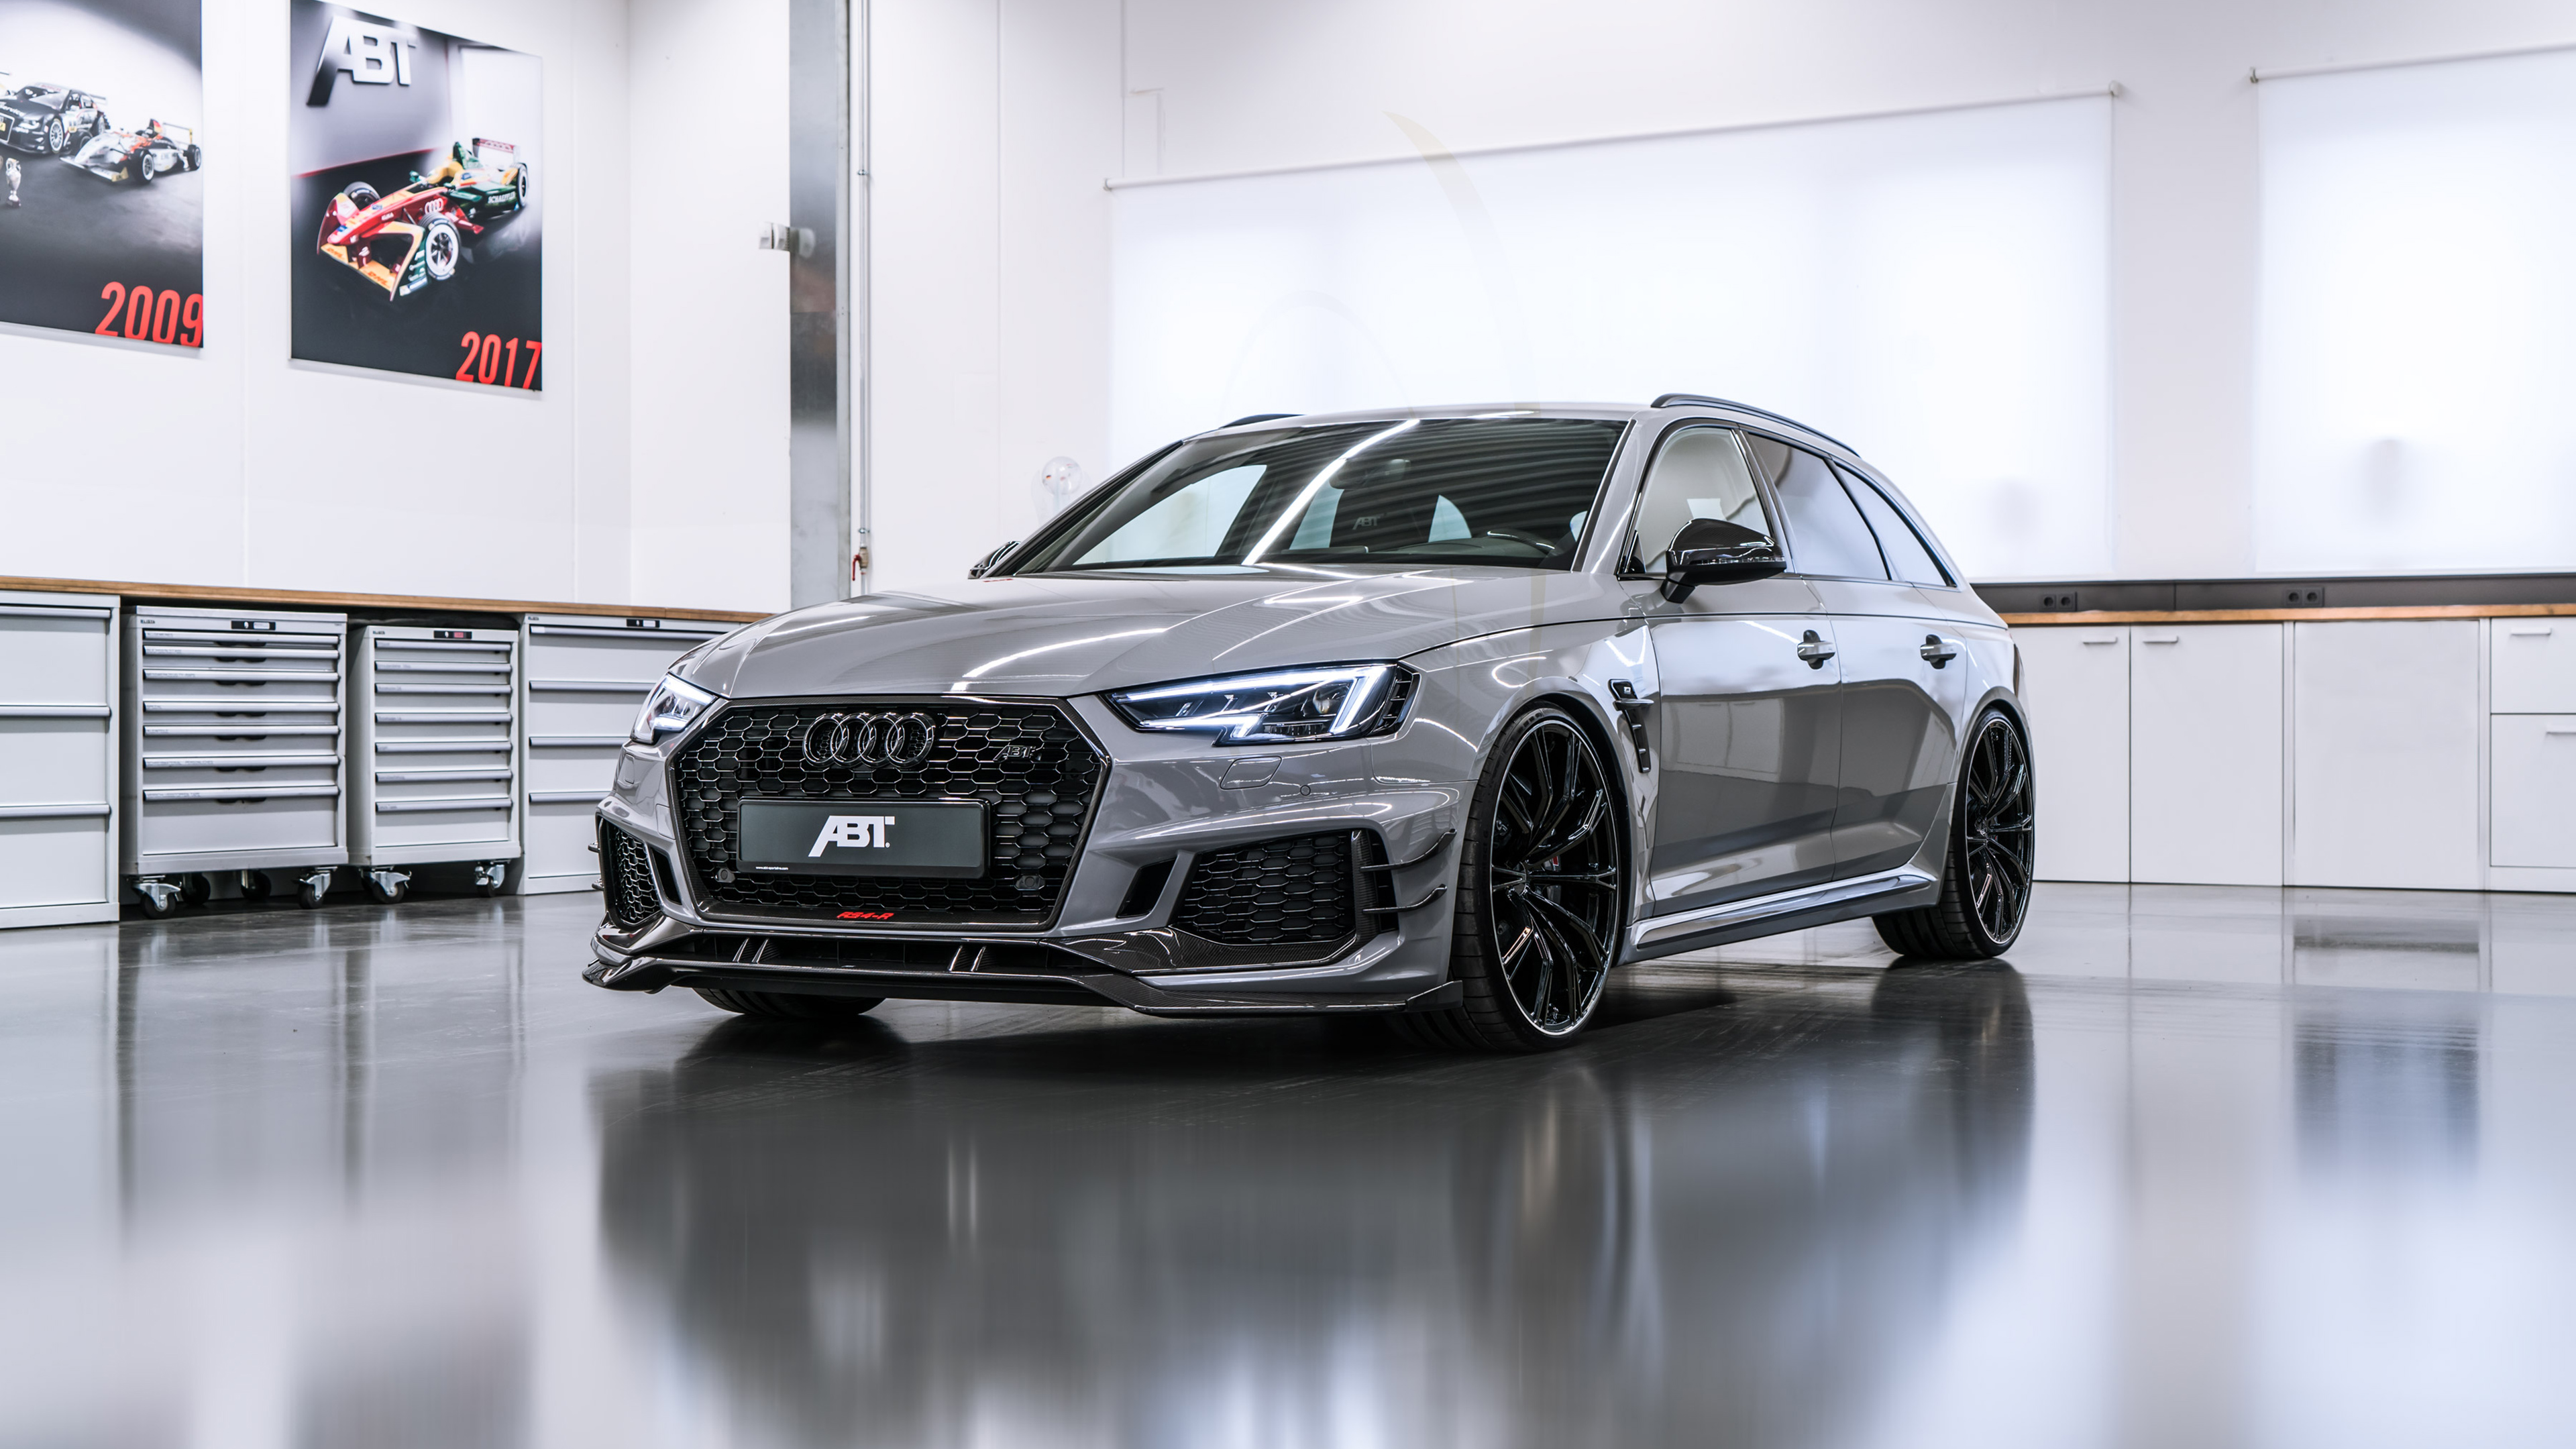 2018 abt audi rs4 r avant 4k 4 wallpaper hd car wallpapers id 9775. Black Bedroom Furniture Sets. Home Design Ideas